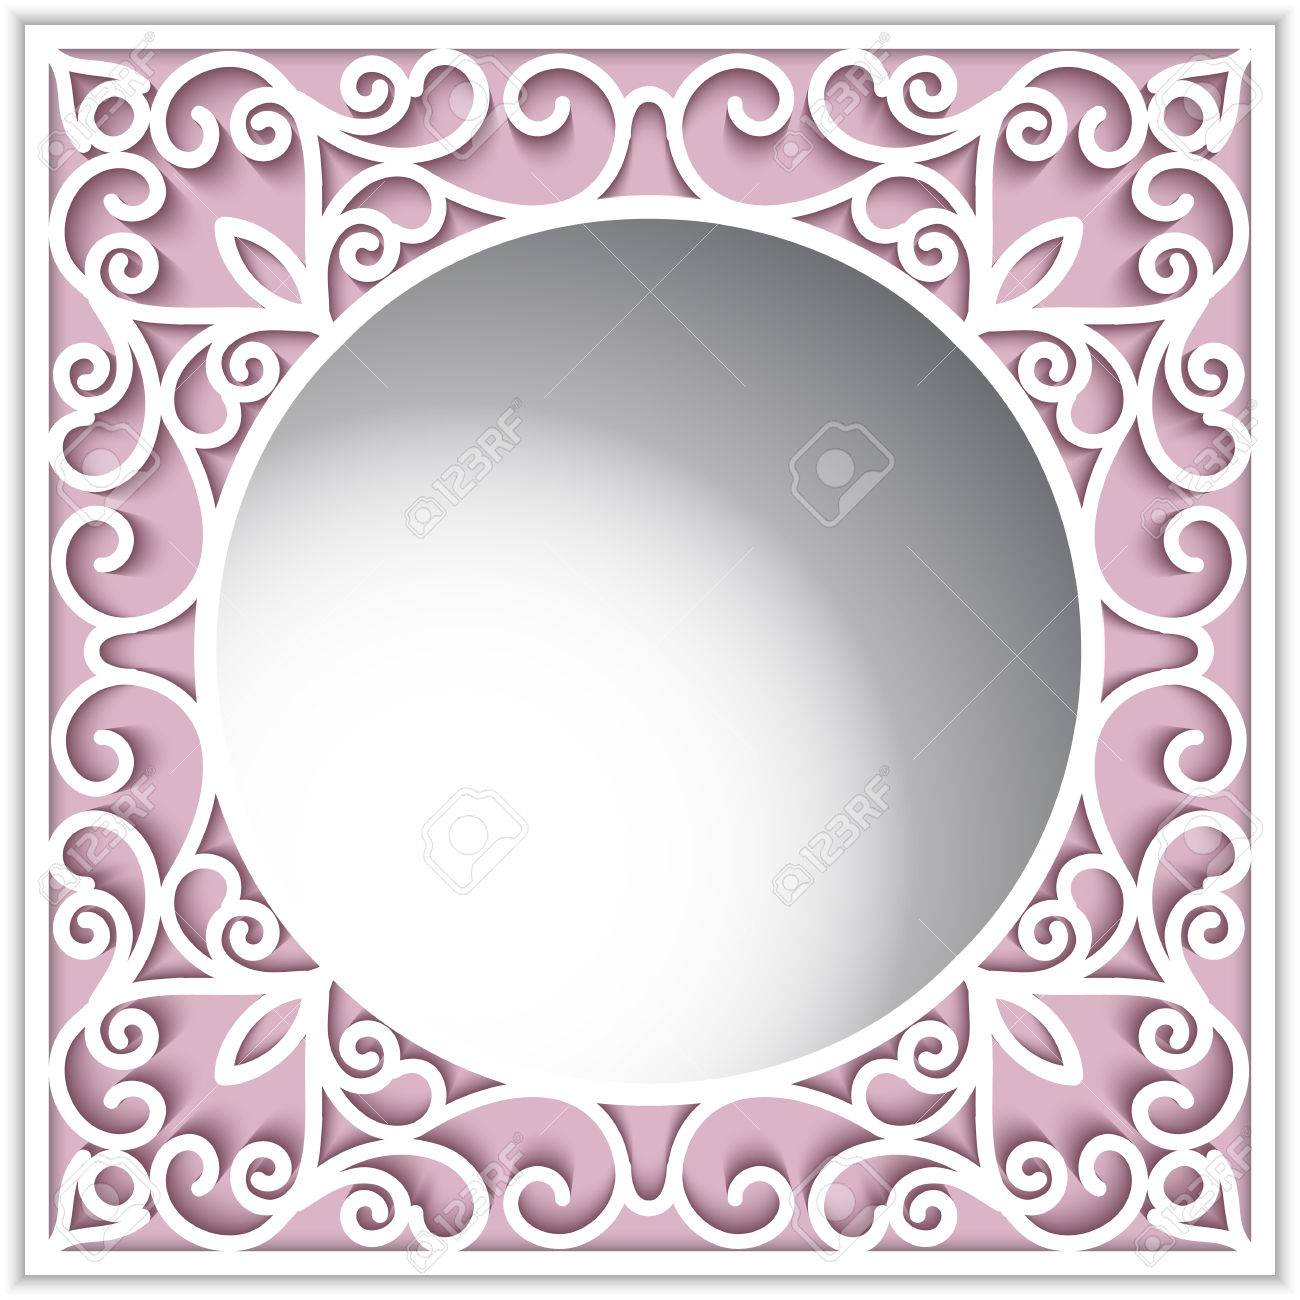 ornamental paper frame with round hole decorative paper lace background stock vector 52369616 - Decorative Paper